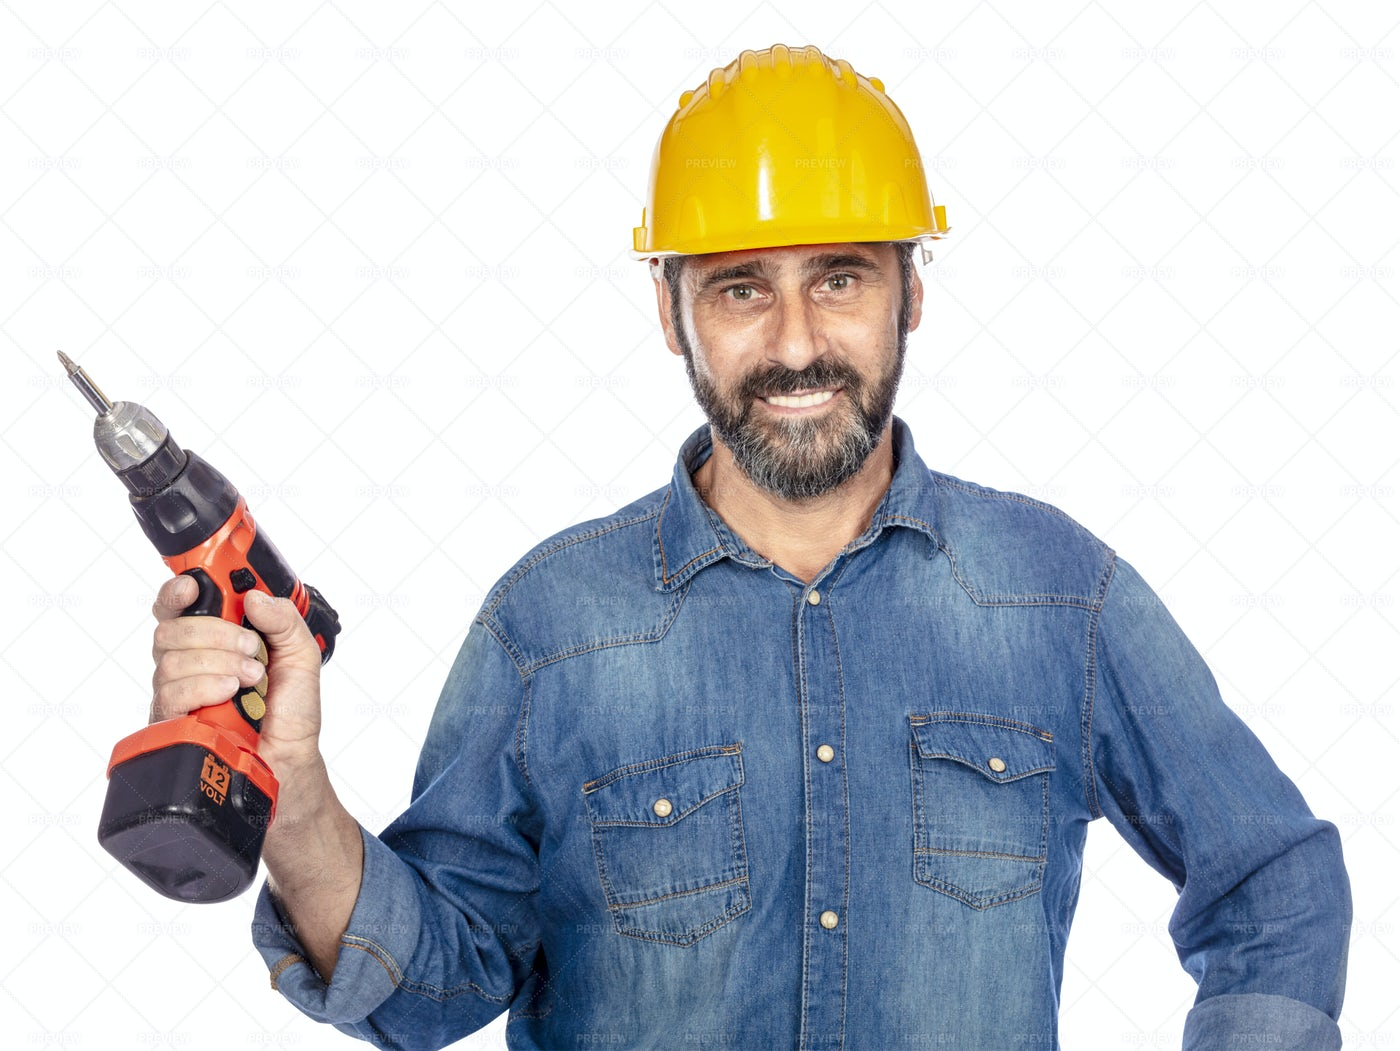 Man With Electric Grill: Stock Photos